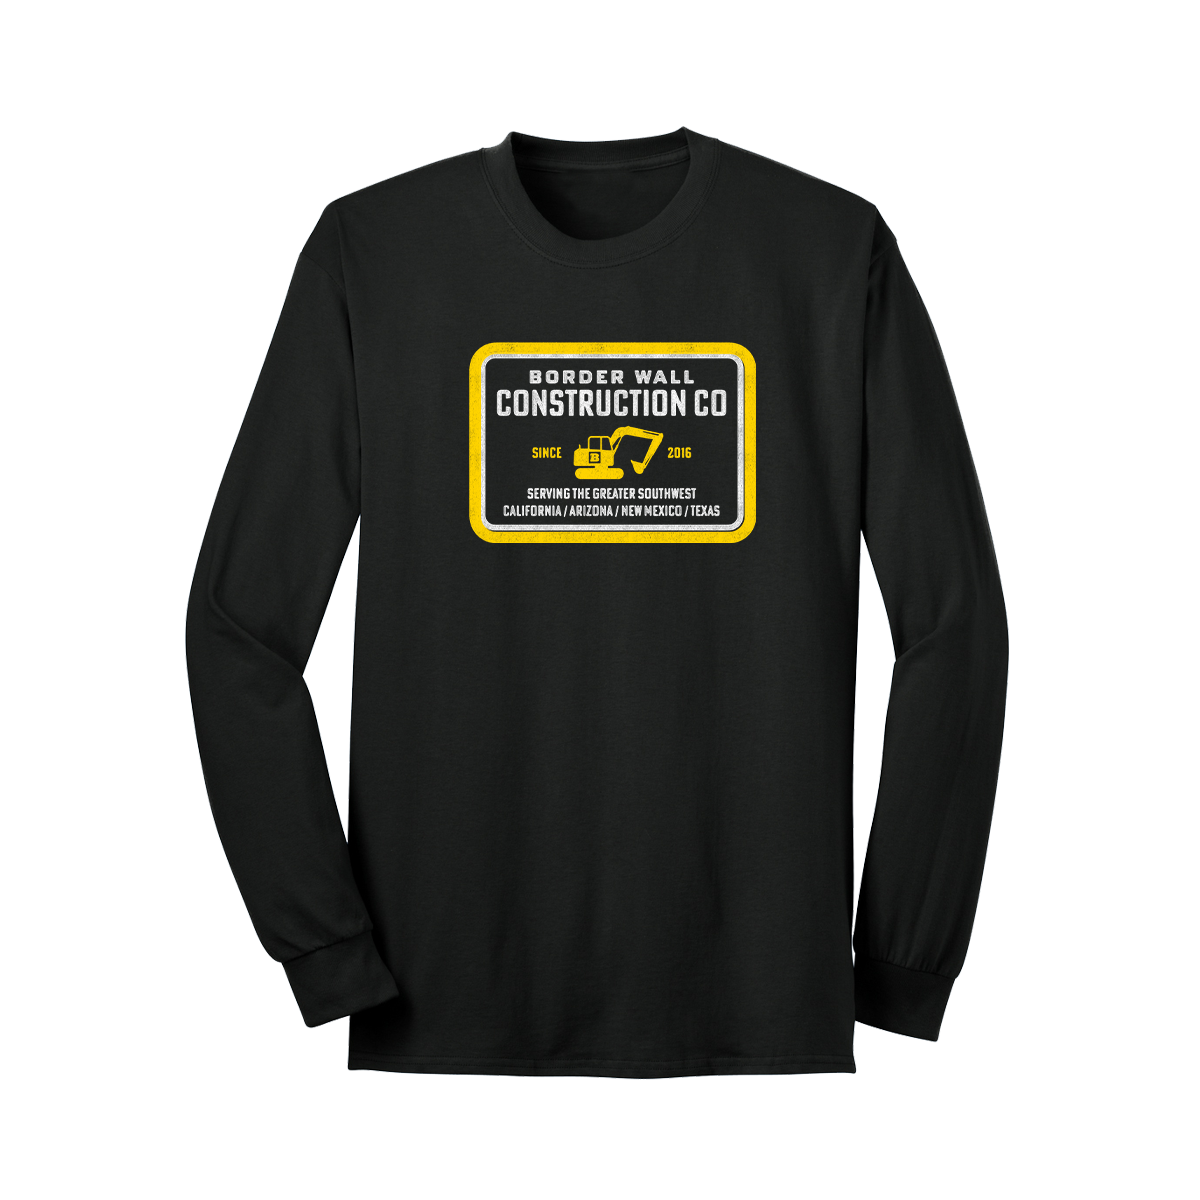 Border Wall Construction Company Long Sleeve T-Shirt - Black